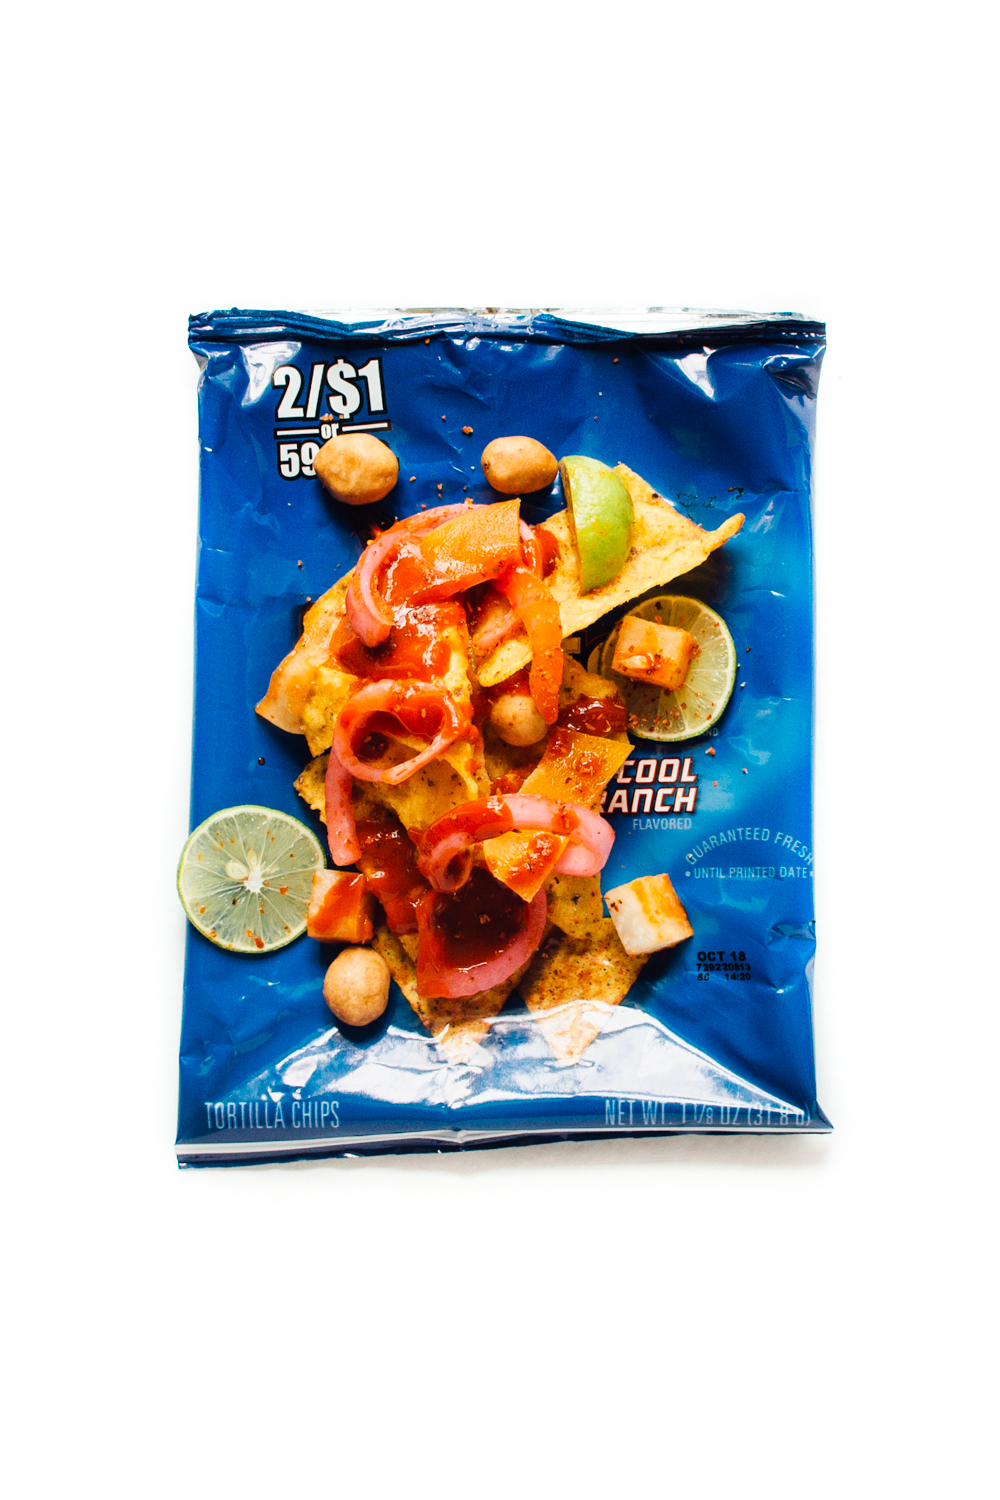 Cool Ranch Doritos, Japanese peanuts, pickled red onion, dried mango, salsa Valentina, jicama, shredded cucumber, Tajín